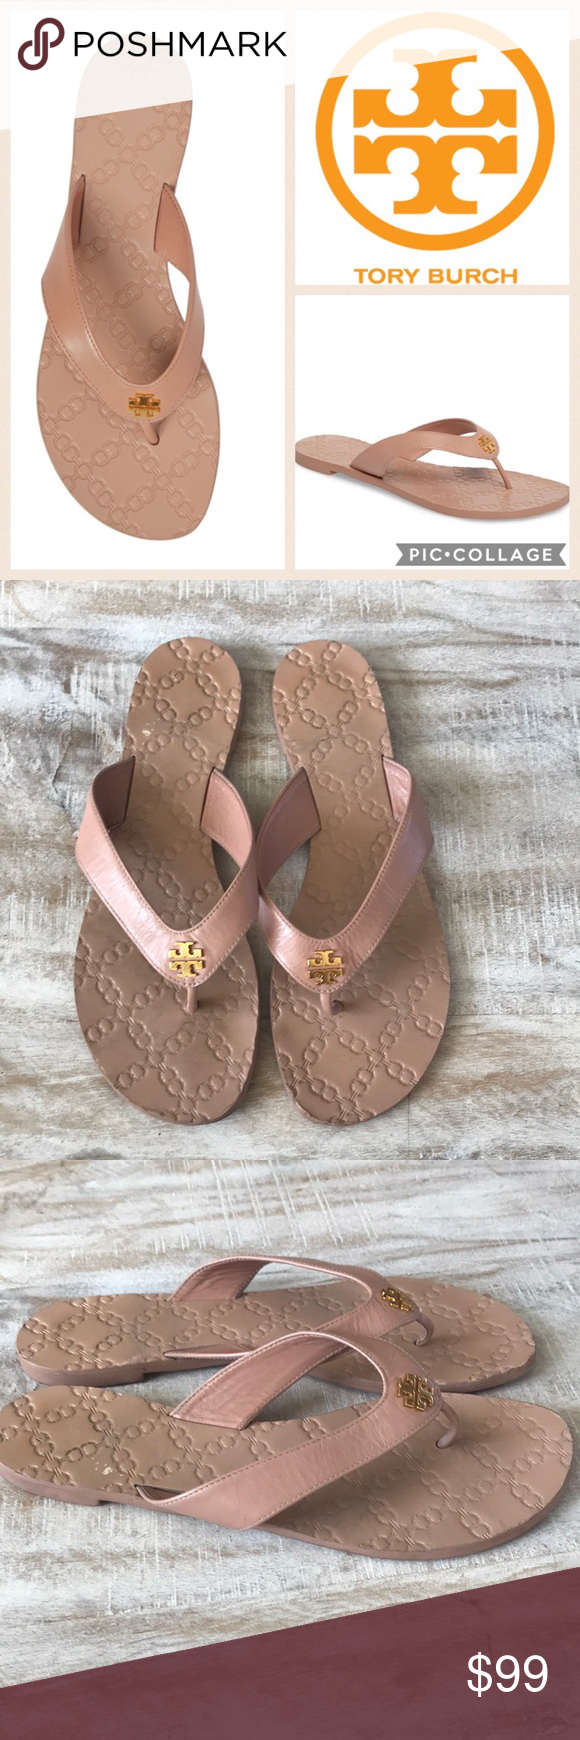 2631fec1bdc Tory Burch Monroe Flip Flop  Light Makeup  9.5 The epitome of carefree chic.